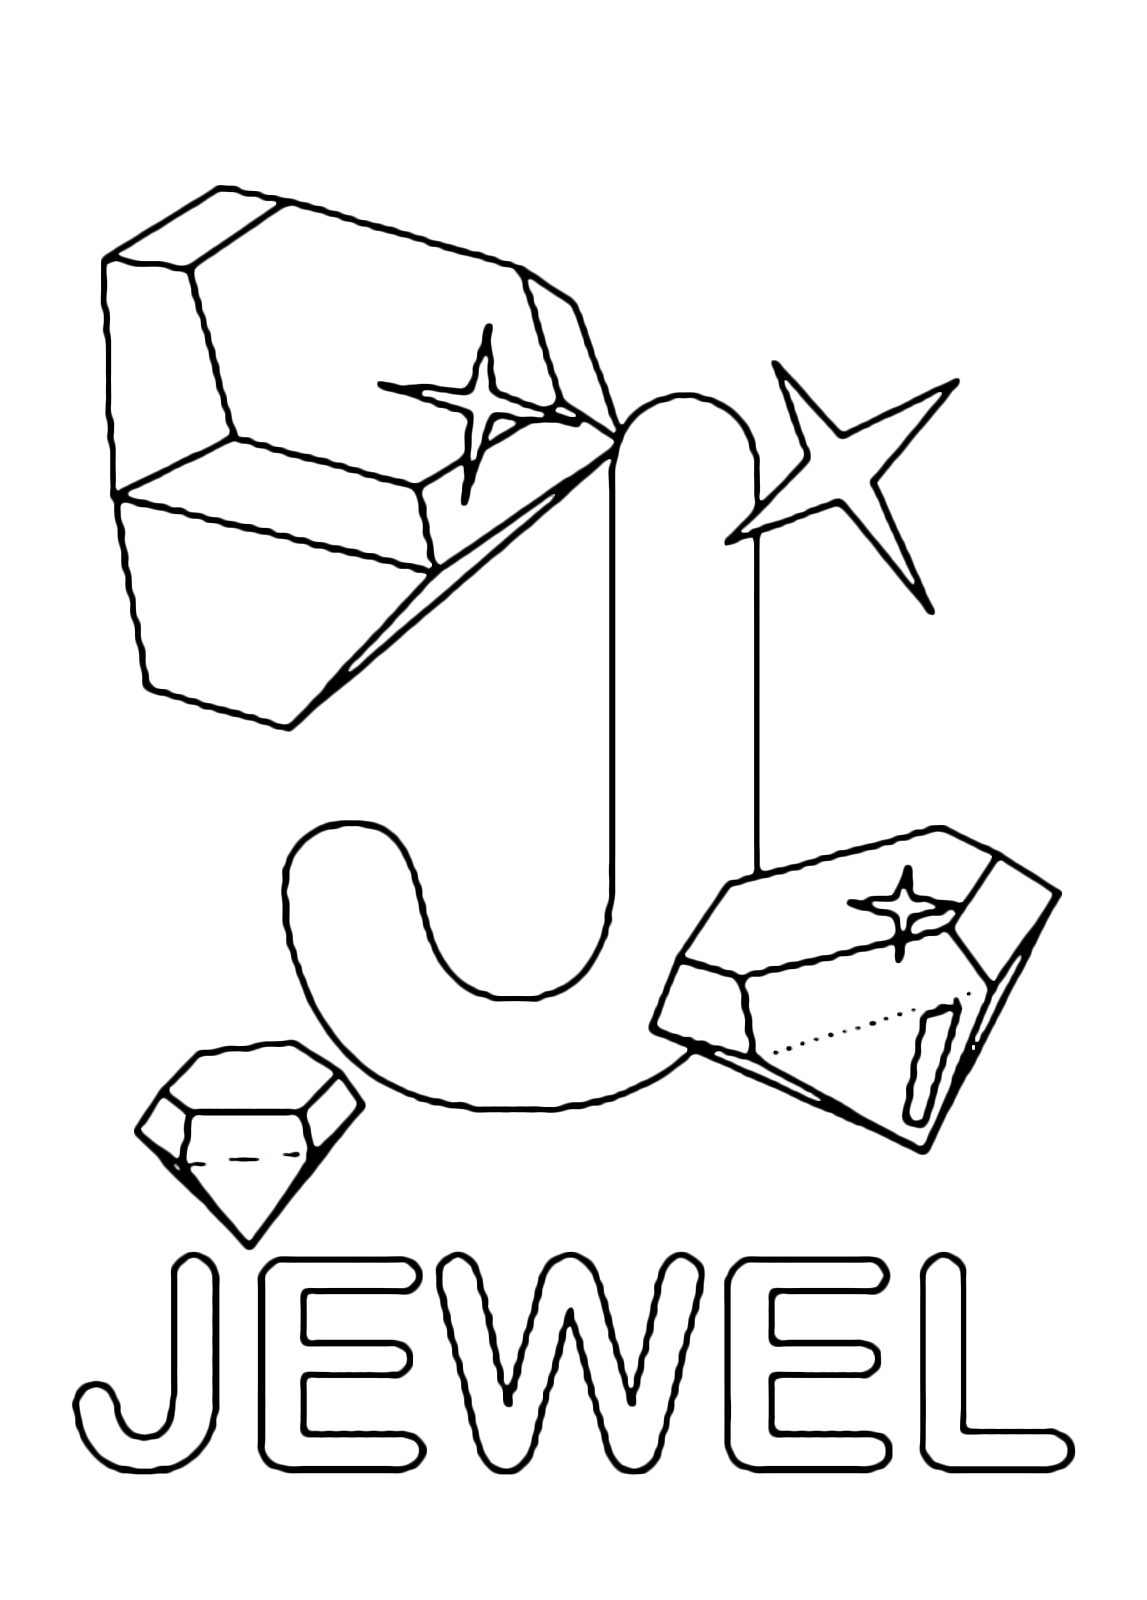 Letters and numbers - J for jewel uppercase letter